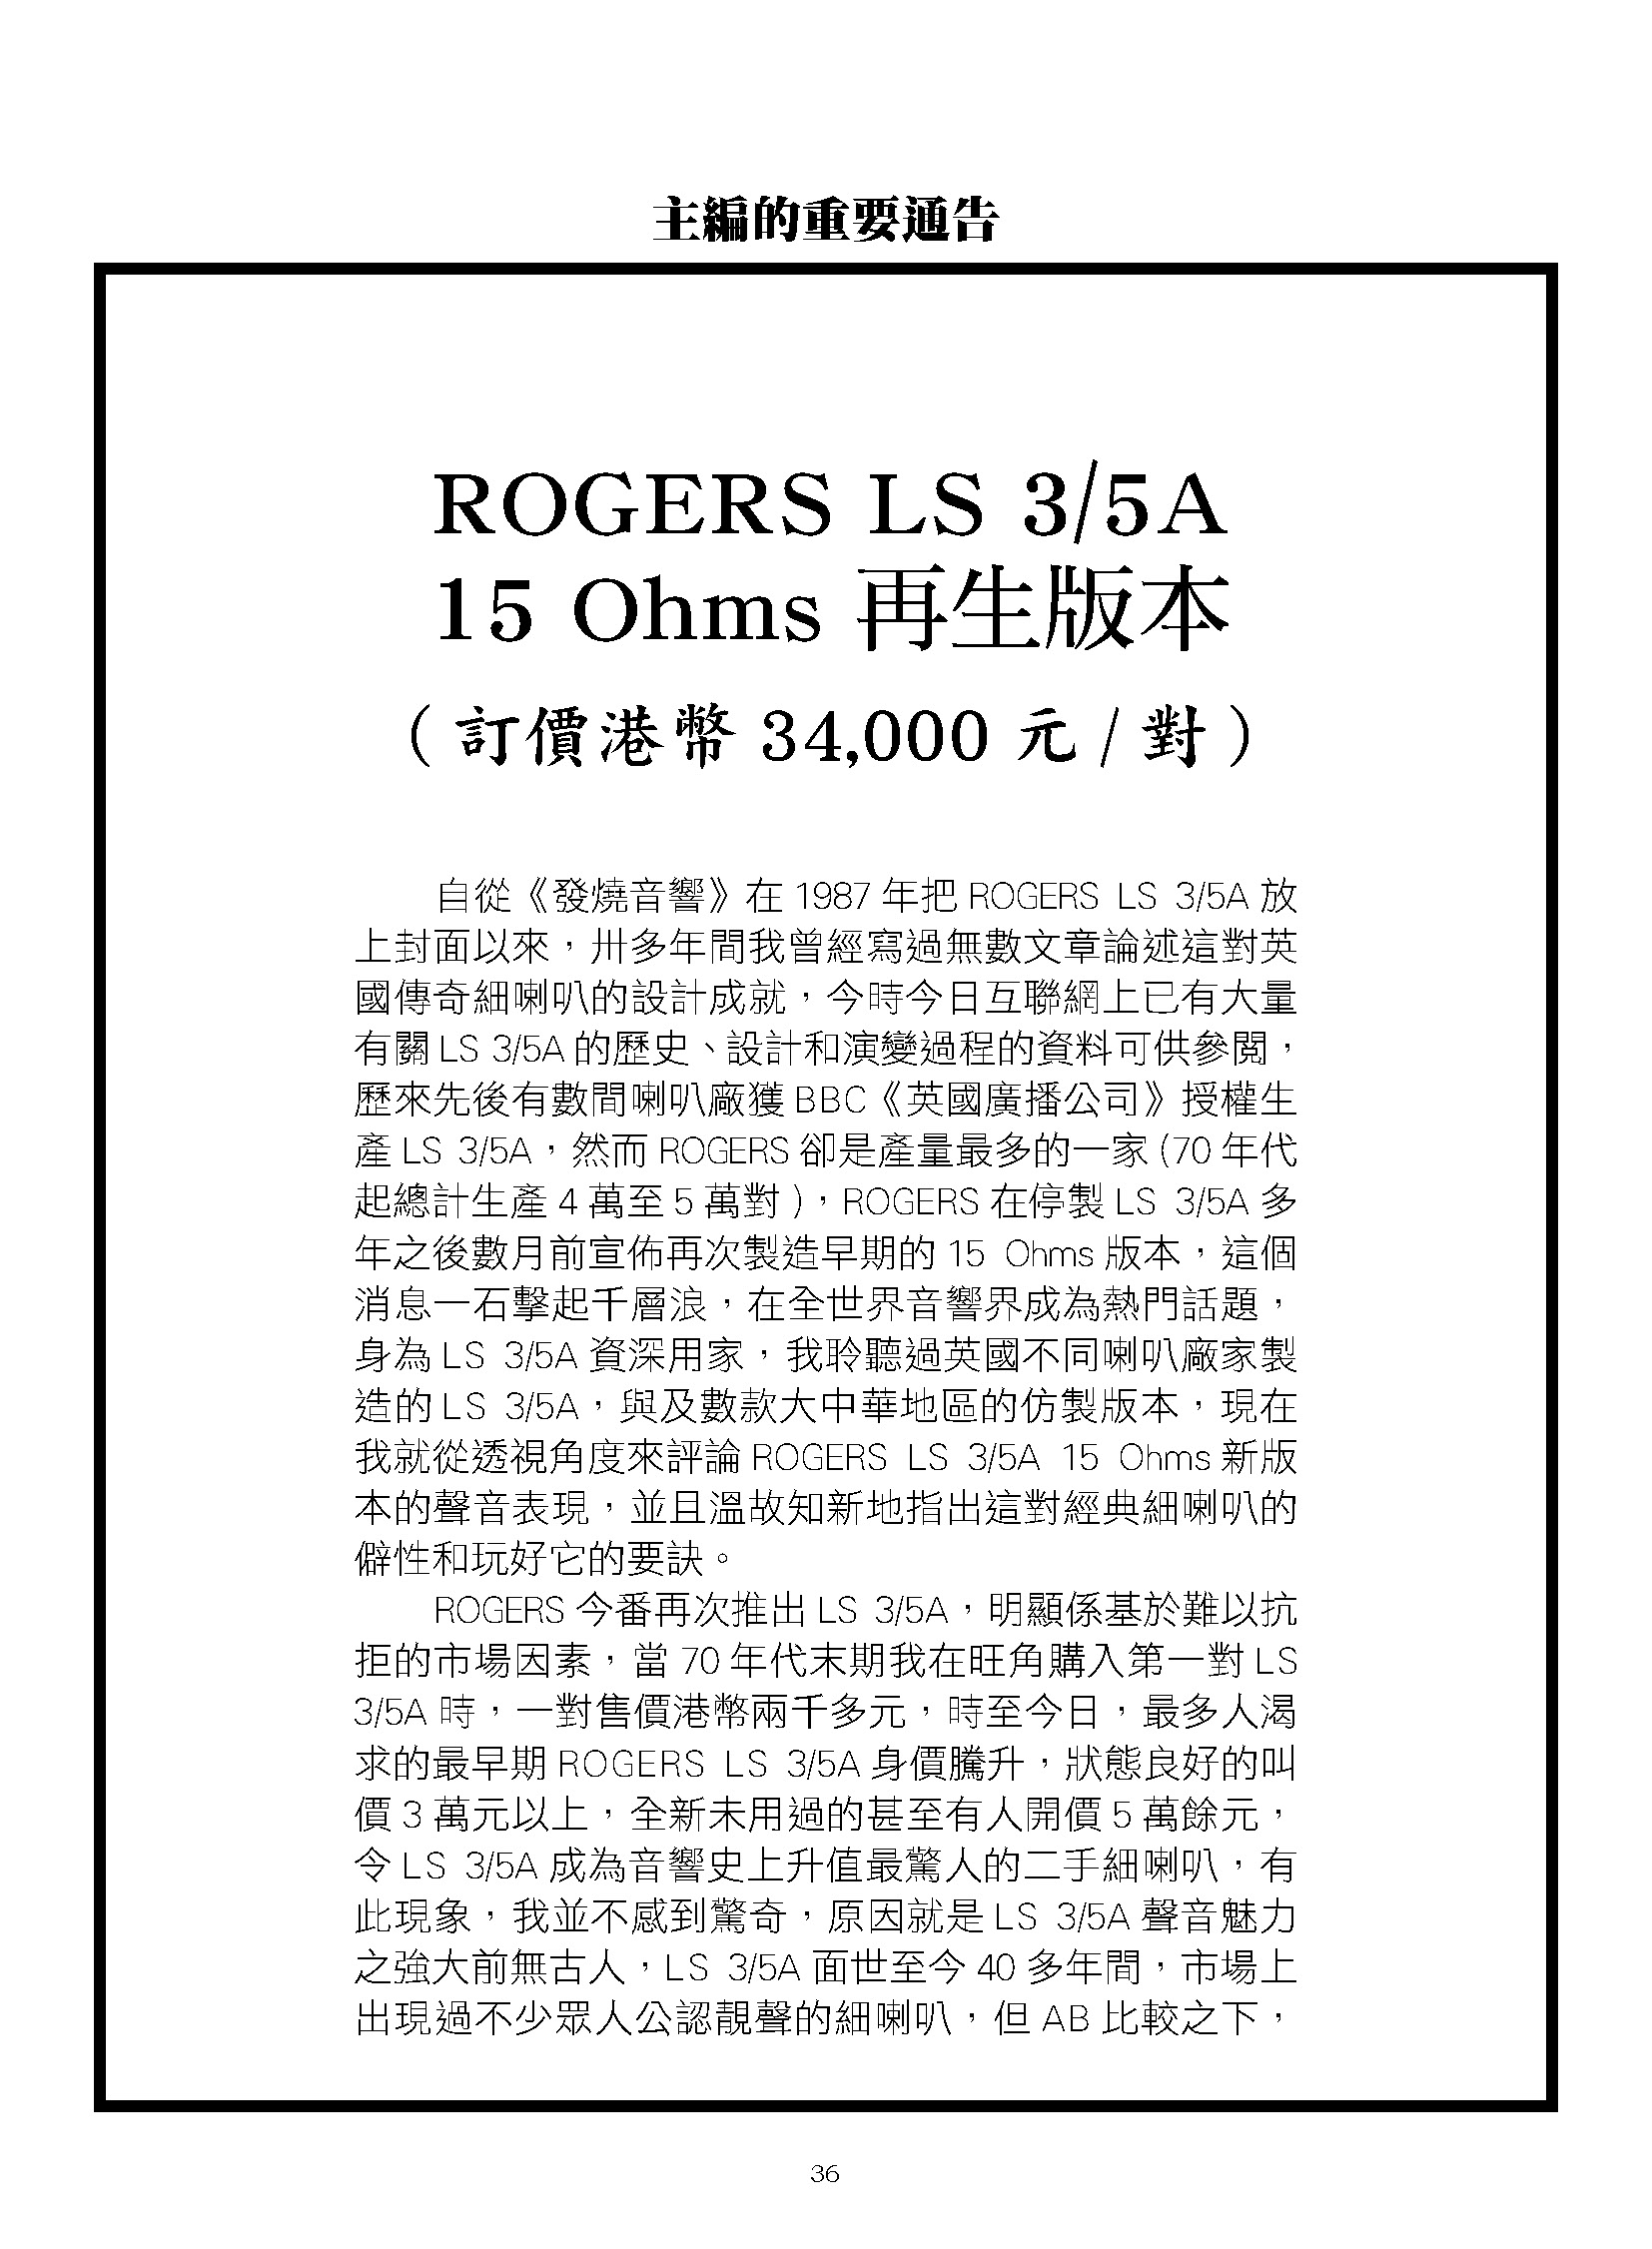 ROGERS LS3-5A - Audiophile 2019 Apr Issue 397 主編的重要通告_Page_1.jpg